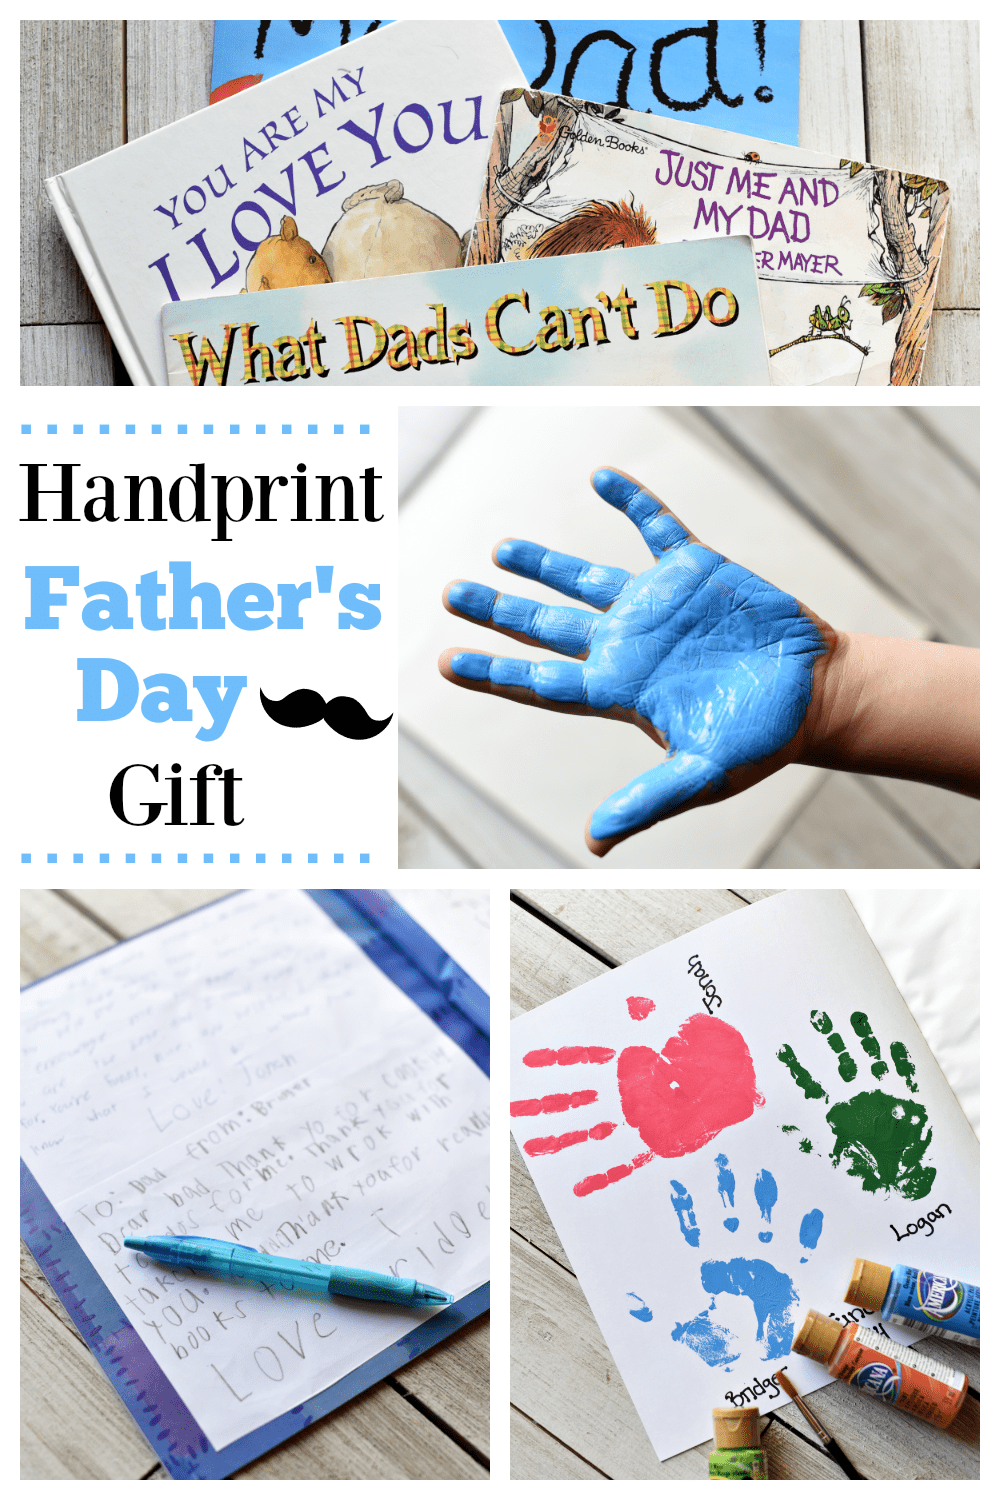 Handprint Father's Day Gifts- Give dad a simple and fun gift this Father's Day! This handprint gift idea is perfect for dad. #Father'sday #Father'sDaygift #Dadgifts #handprintgifts